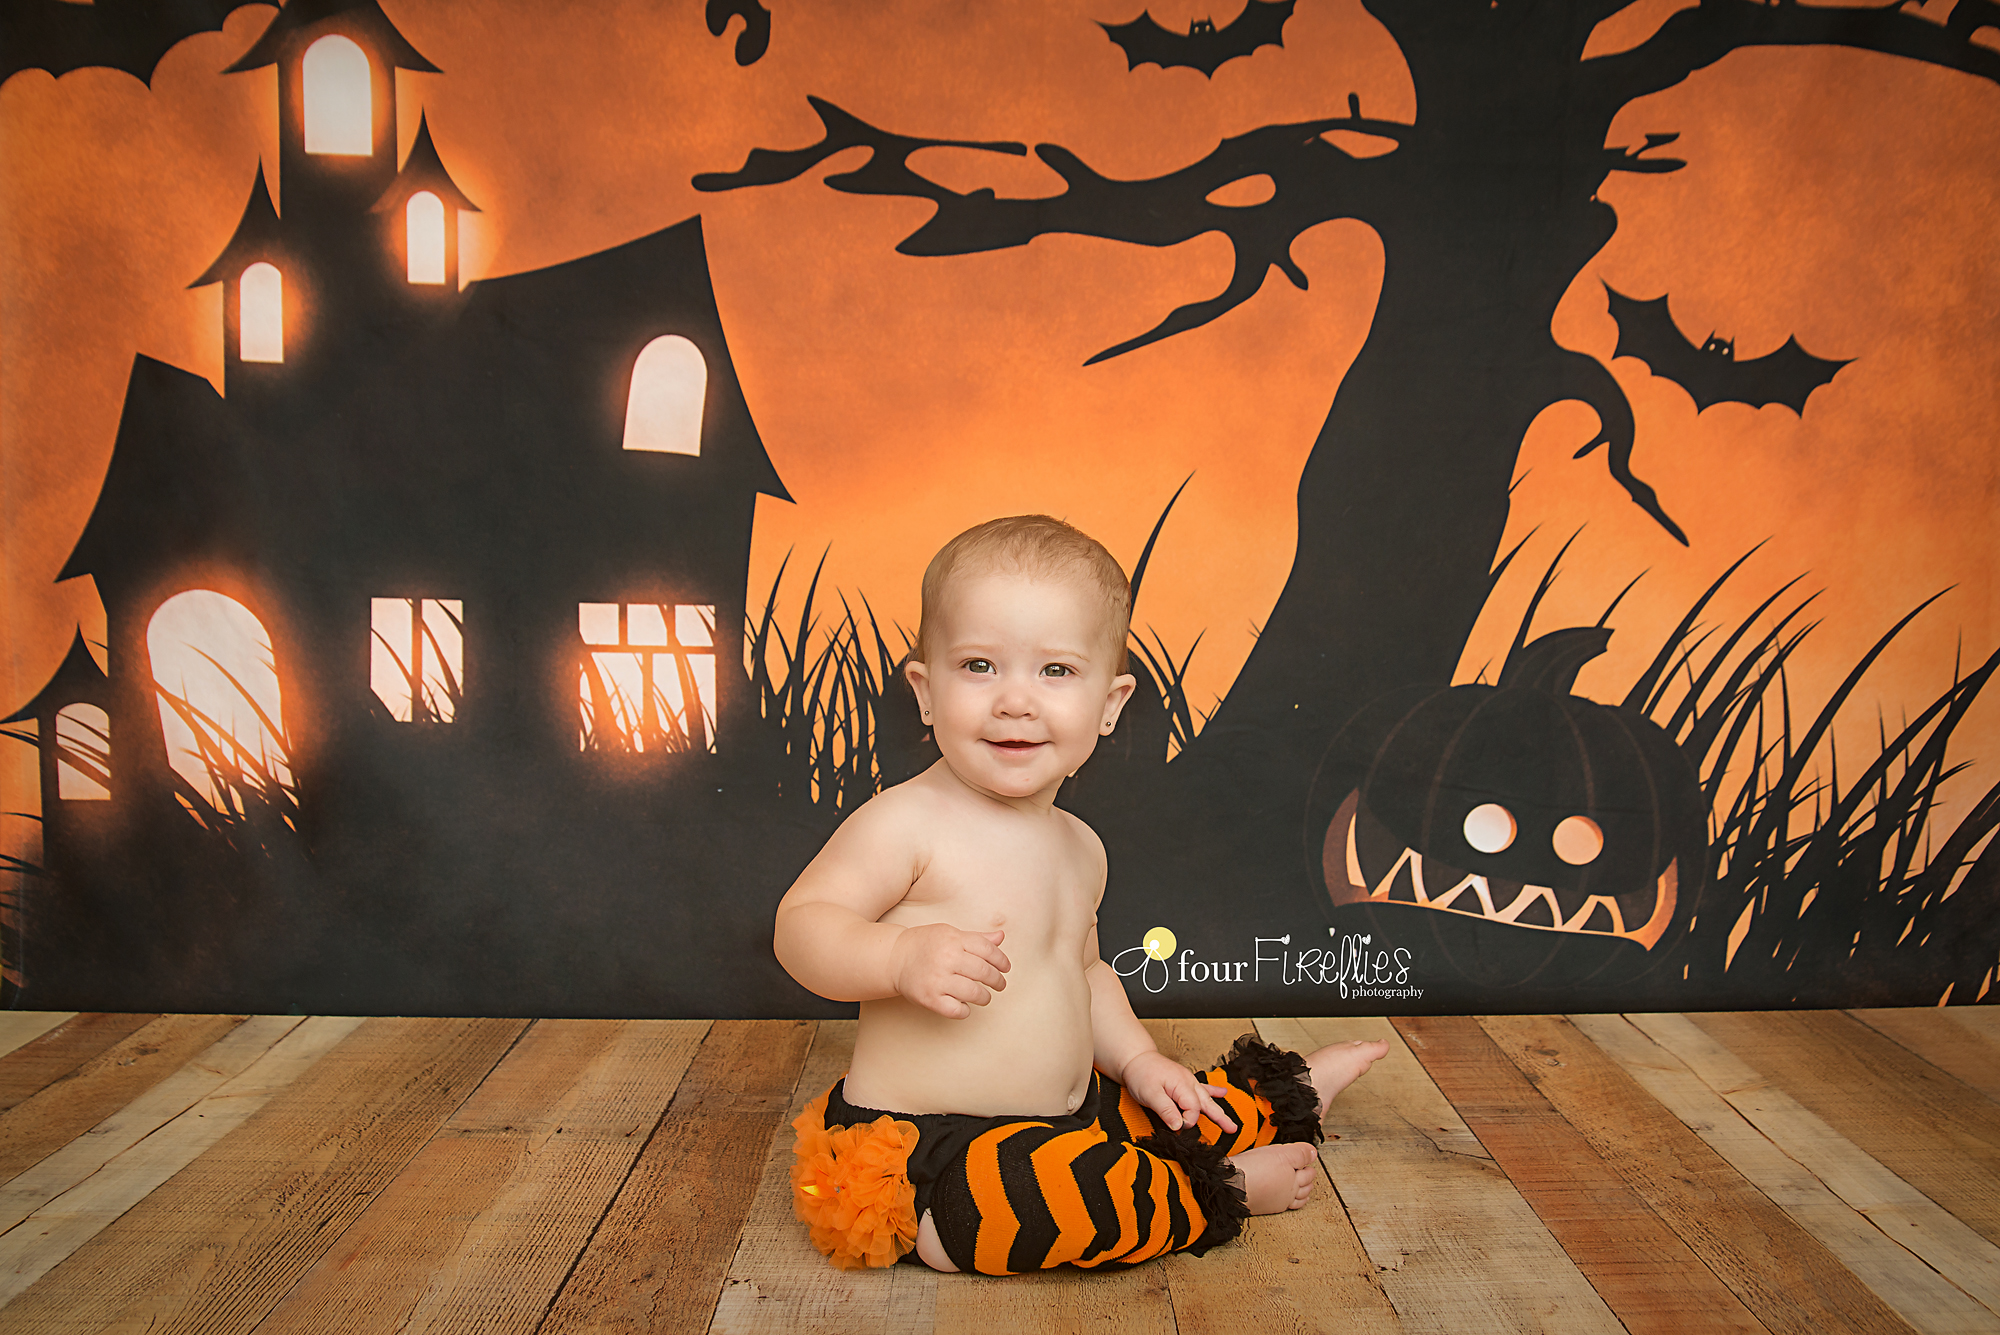 st-louis-photography-halloween-mini-sessions-orange-and-black-scene-6-month-old-in-leggings-and-ruffle-diaper-cover.jpg